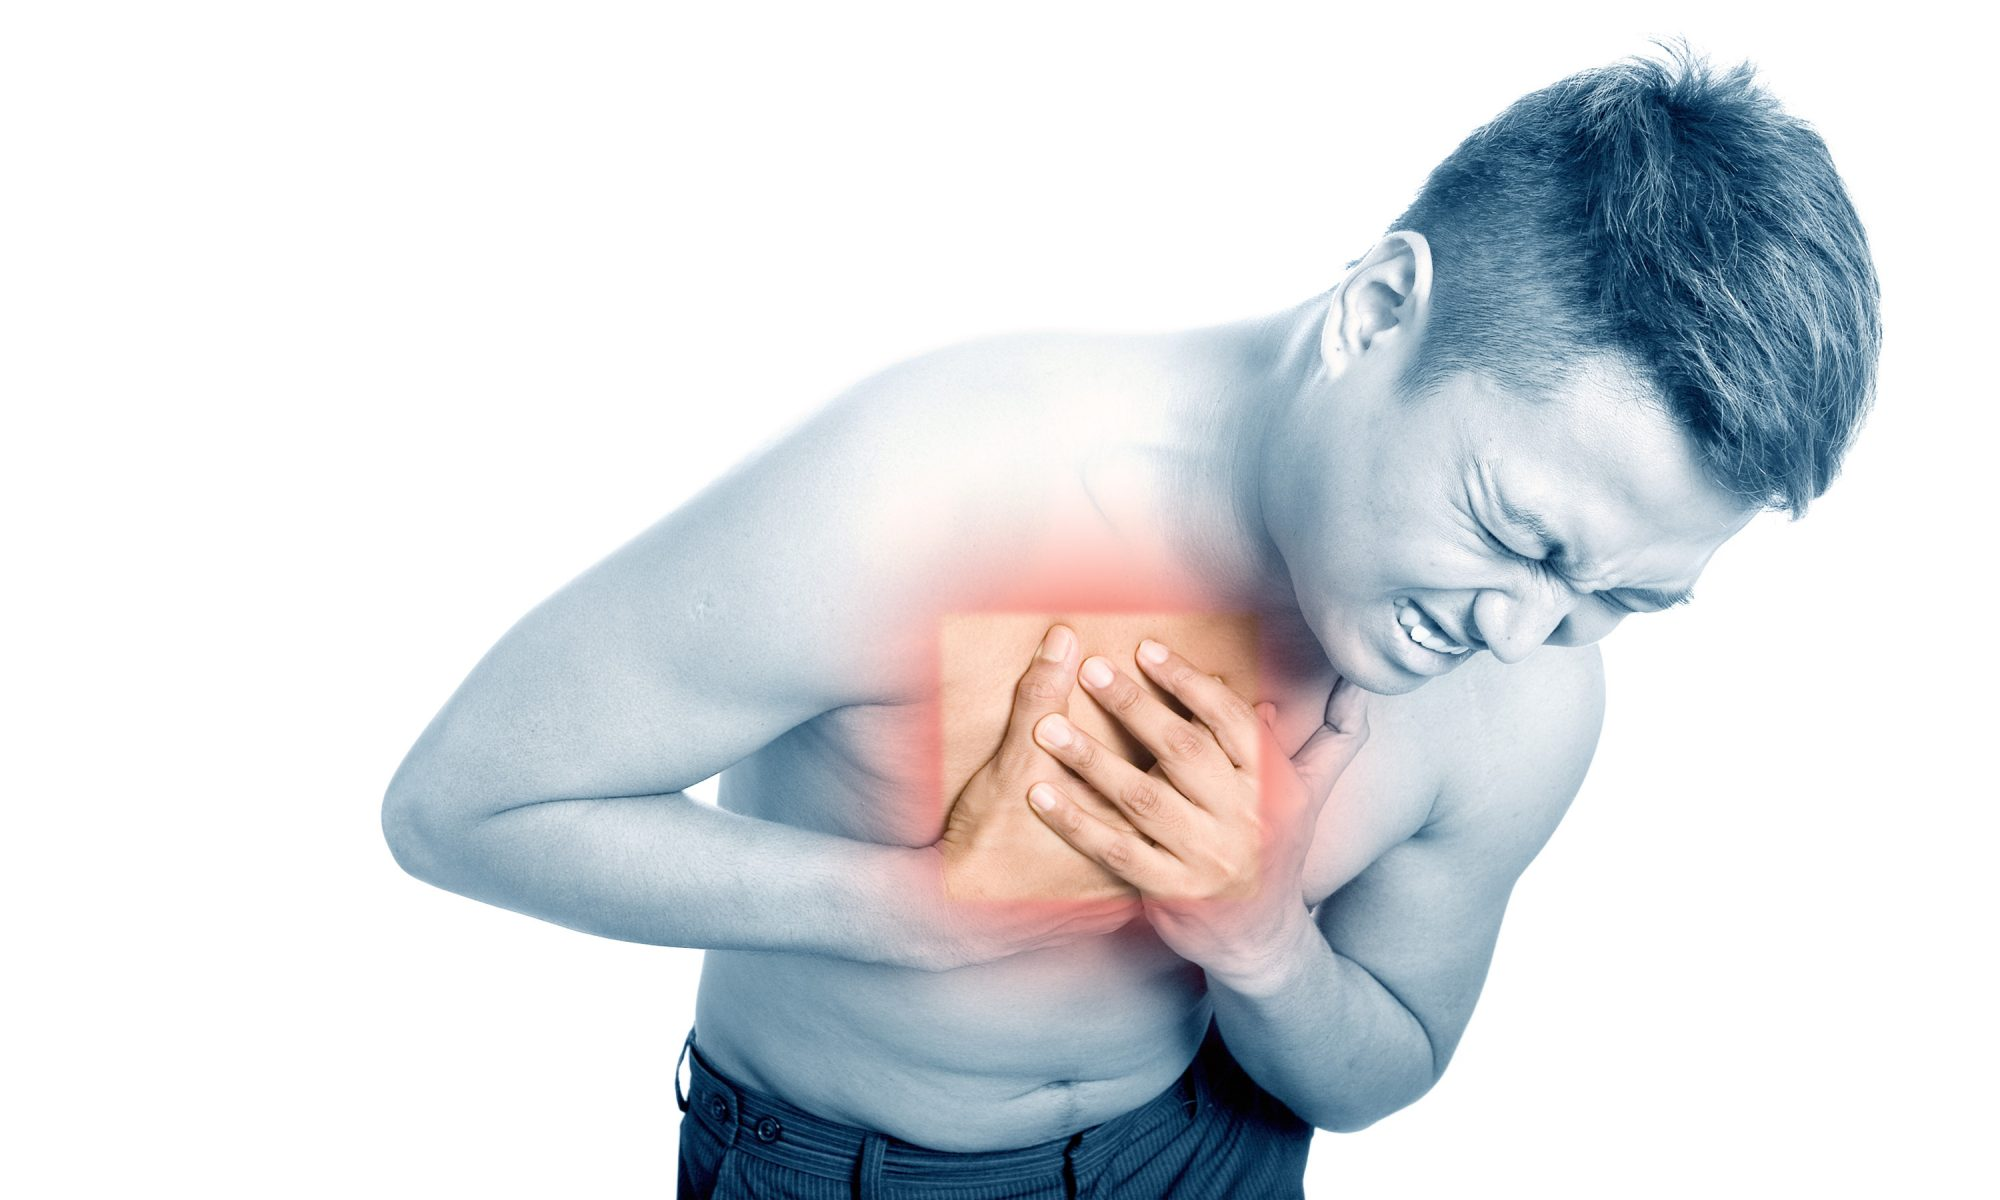 A young man suffering from chest pain. (Hemera/Thinkstock)